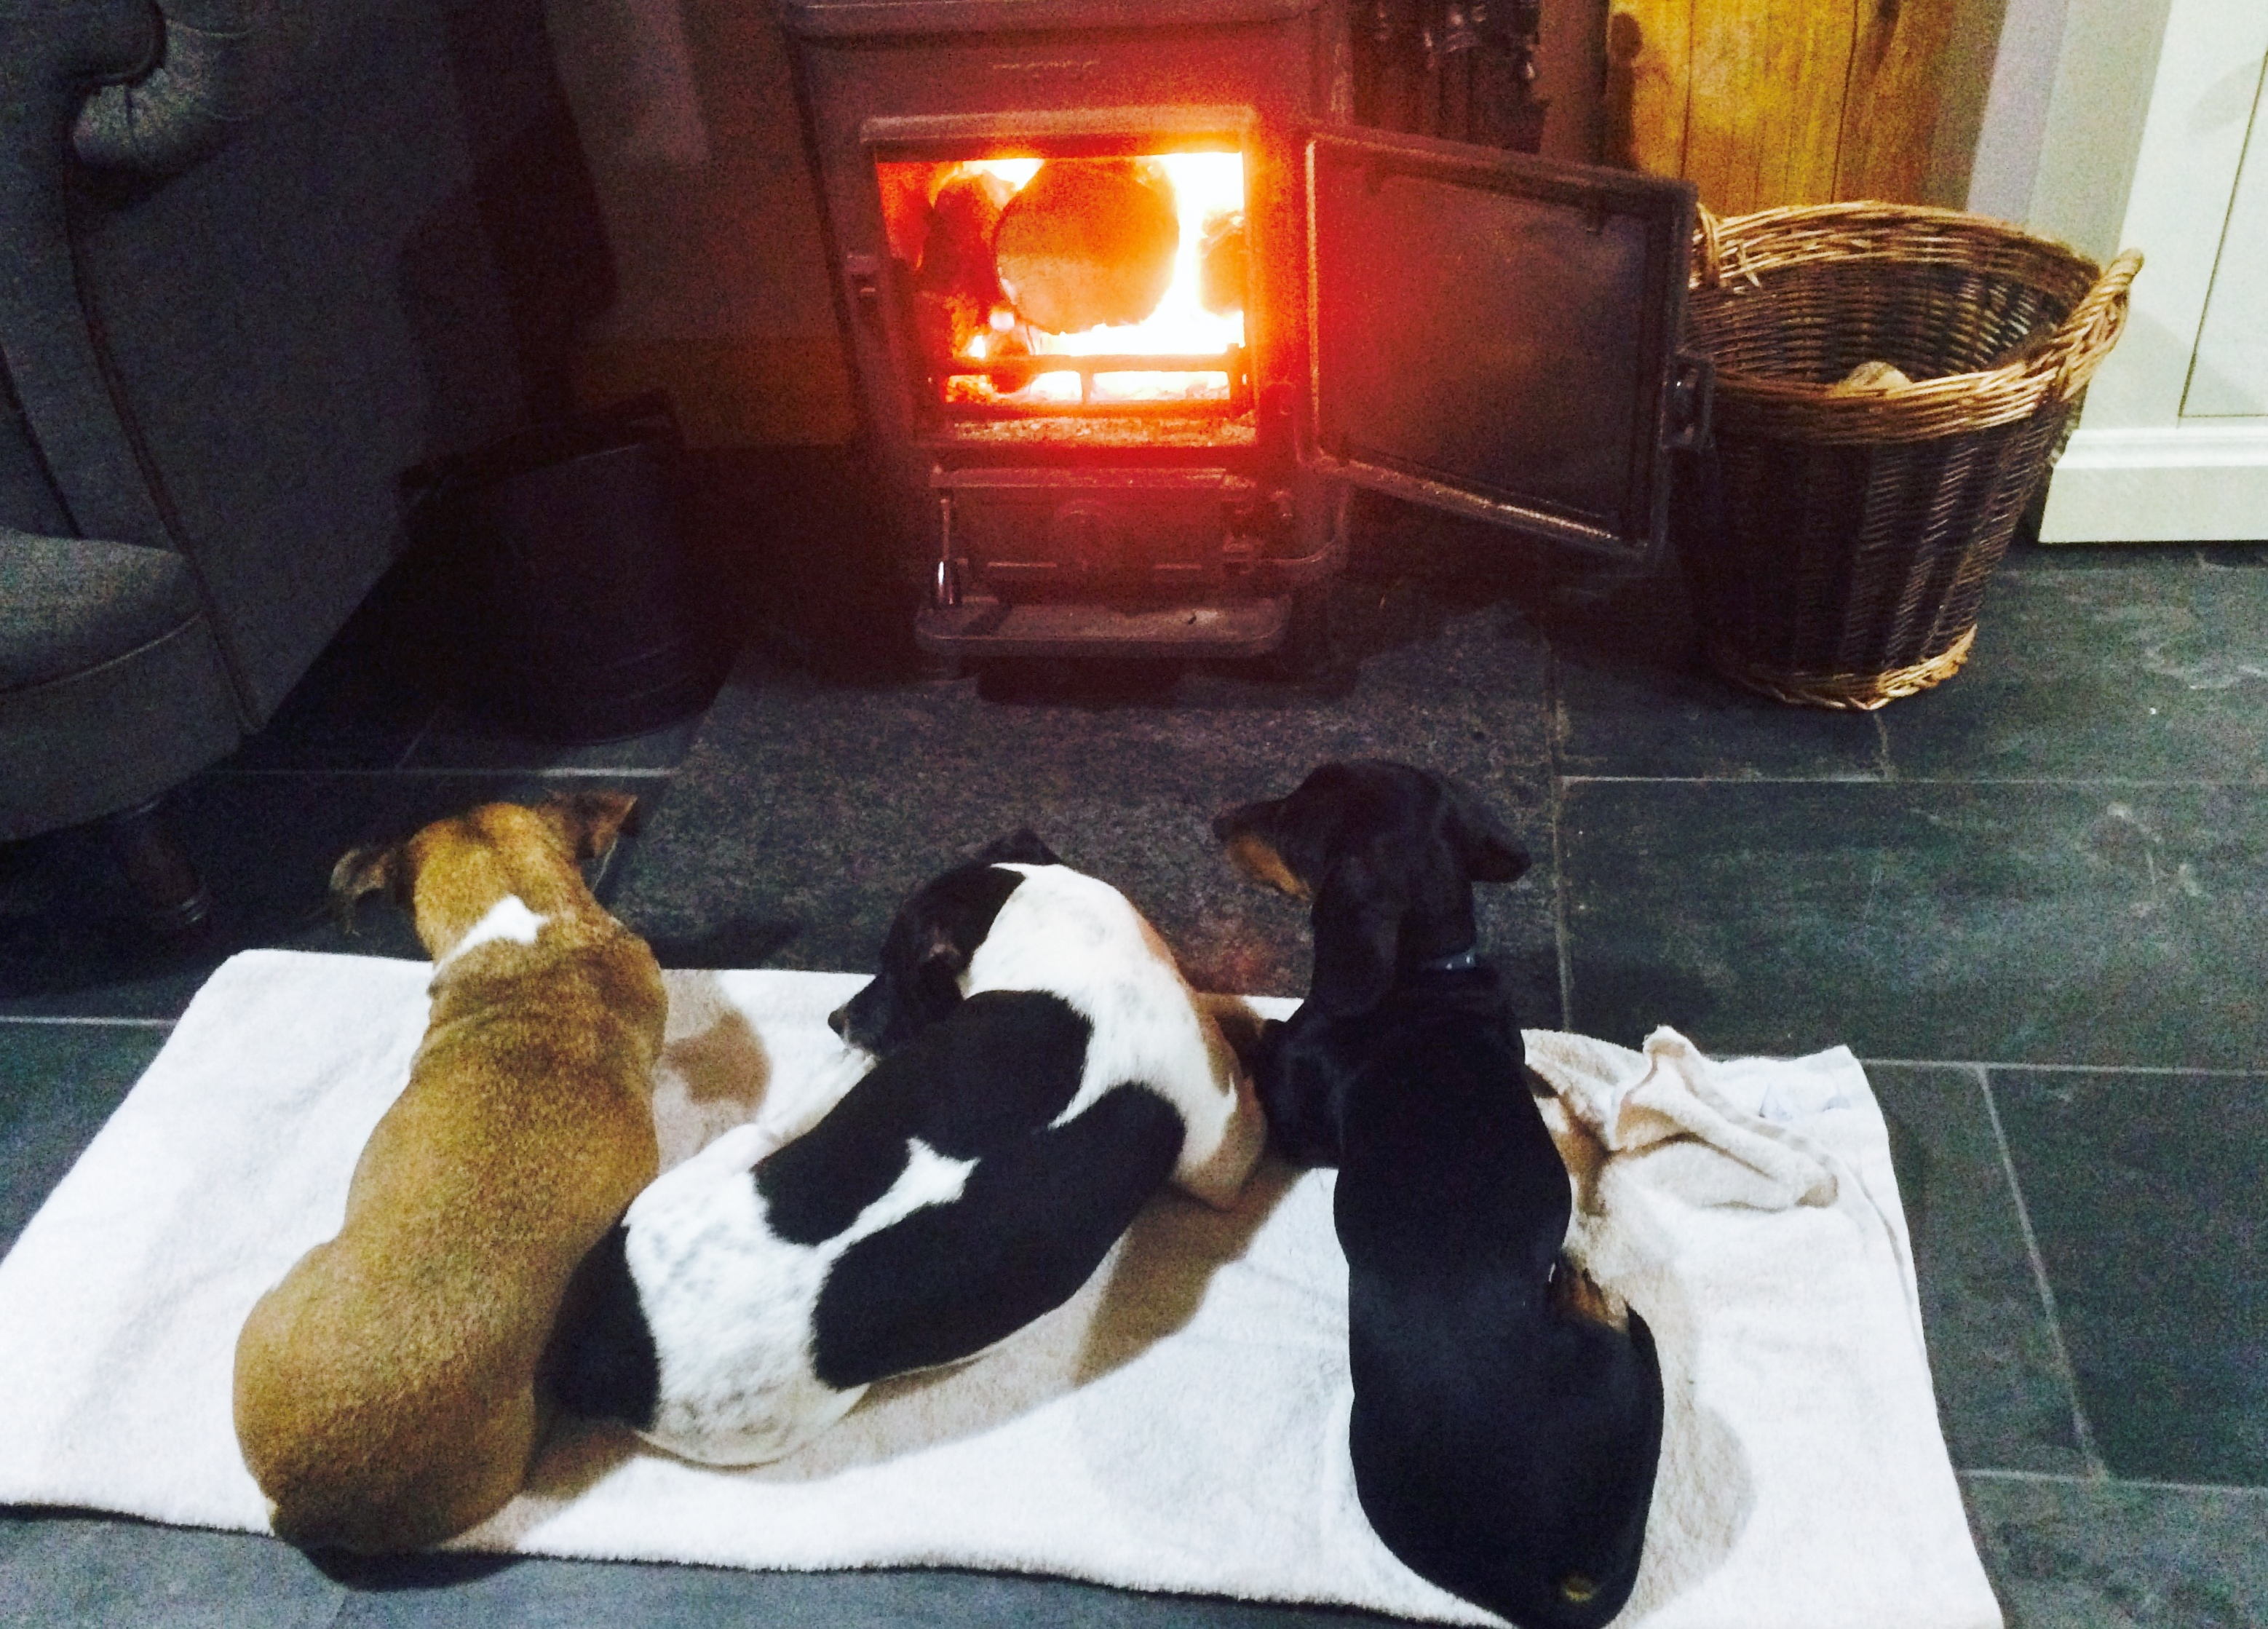 Pet friendly infront of fire